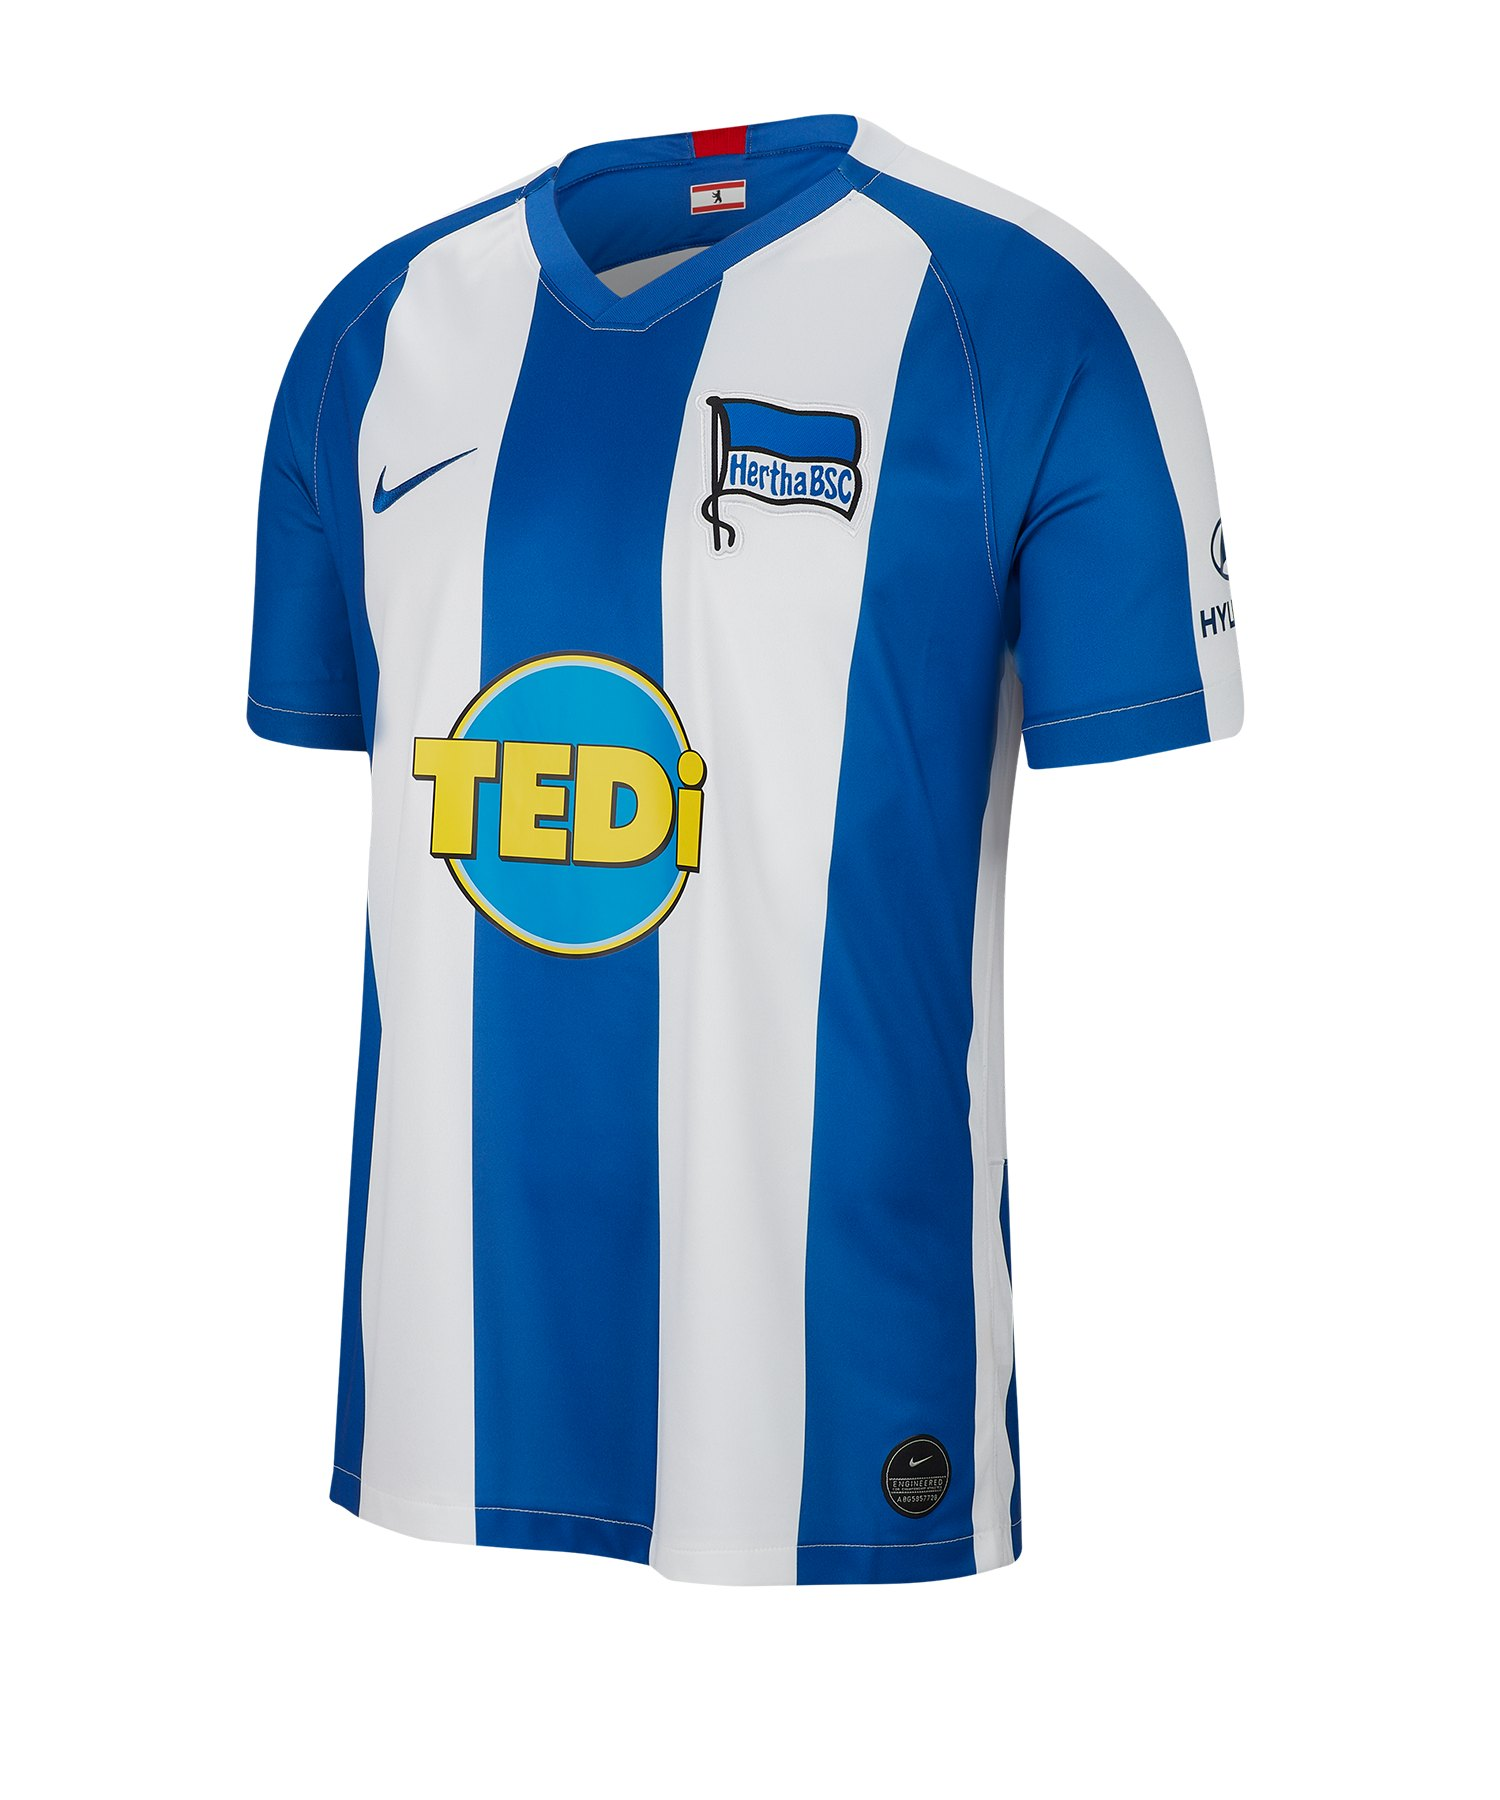 Nike Hertha BSC Berlin Trikot Home 2019/2020 Kids F101 - weiss